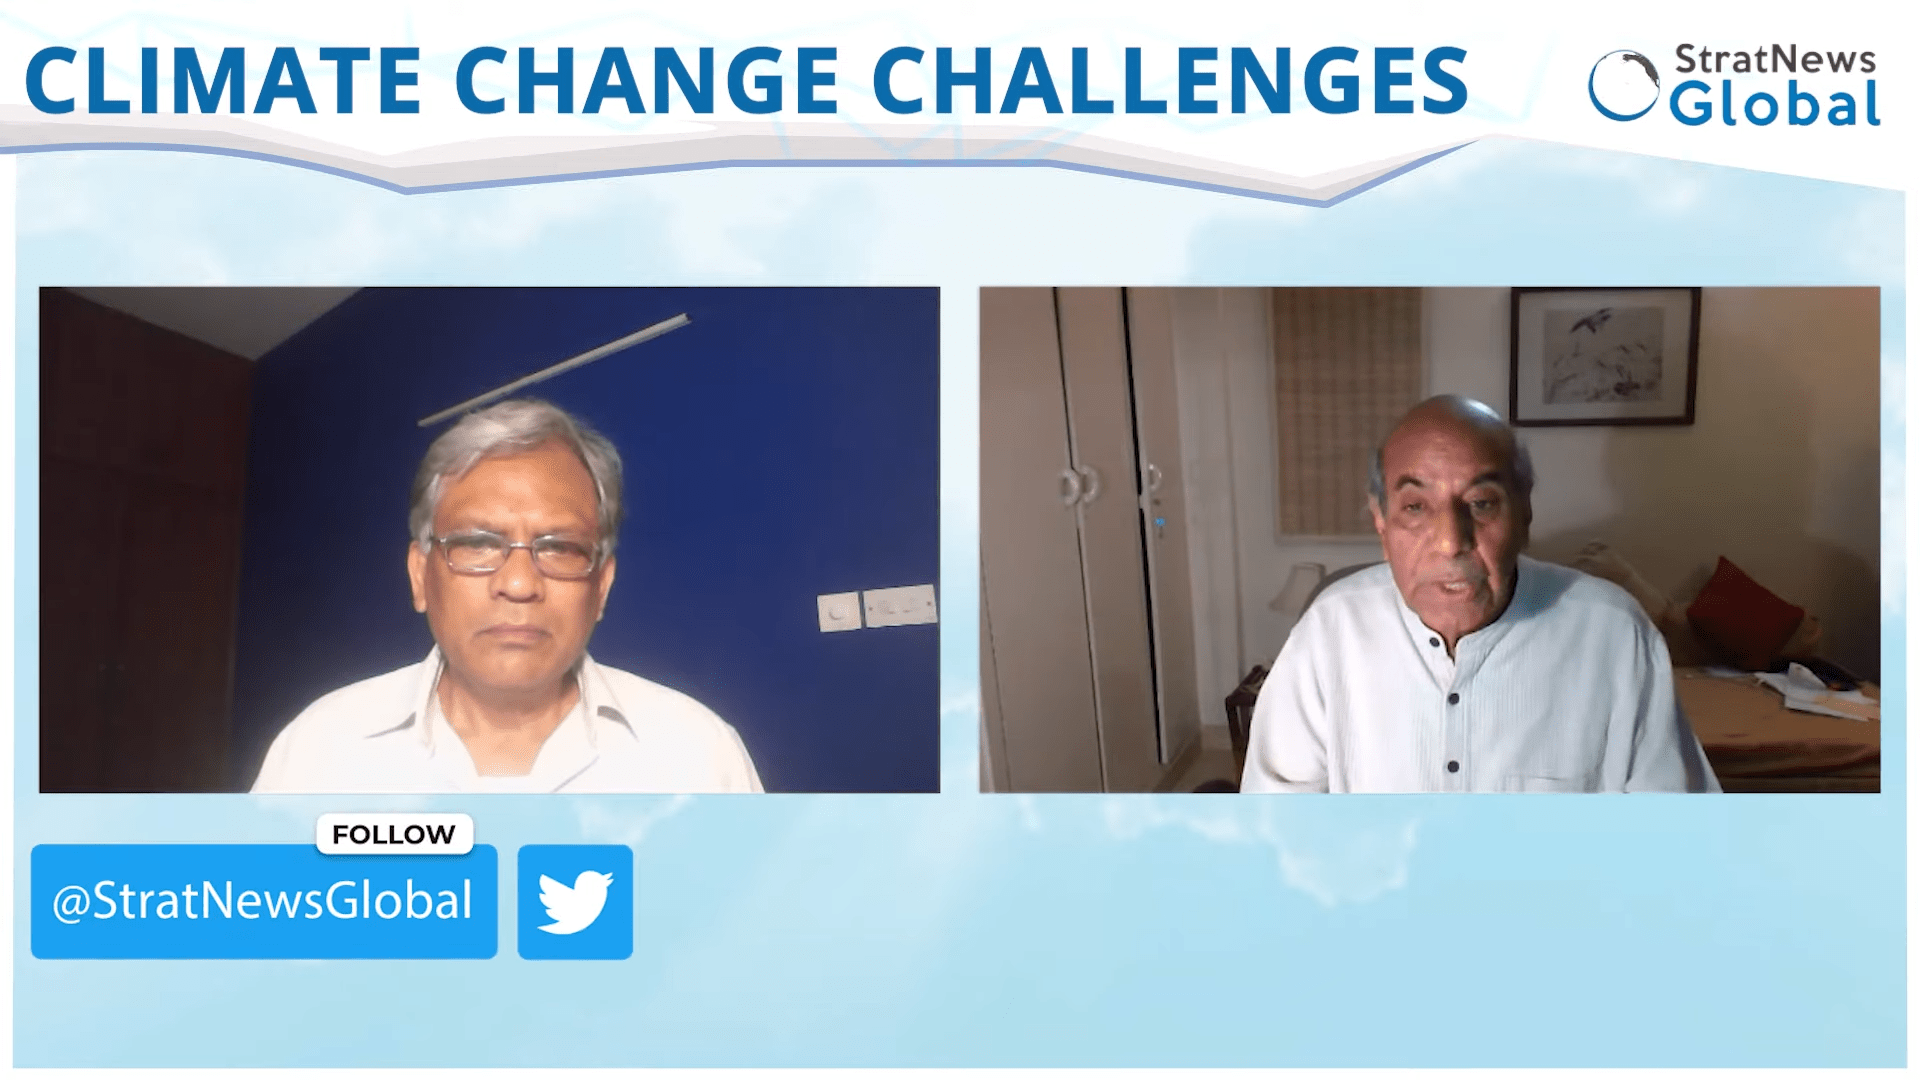 StratNewsGlobal Special Edition on Climate Change Challenges